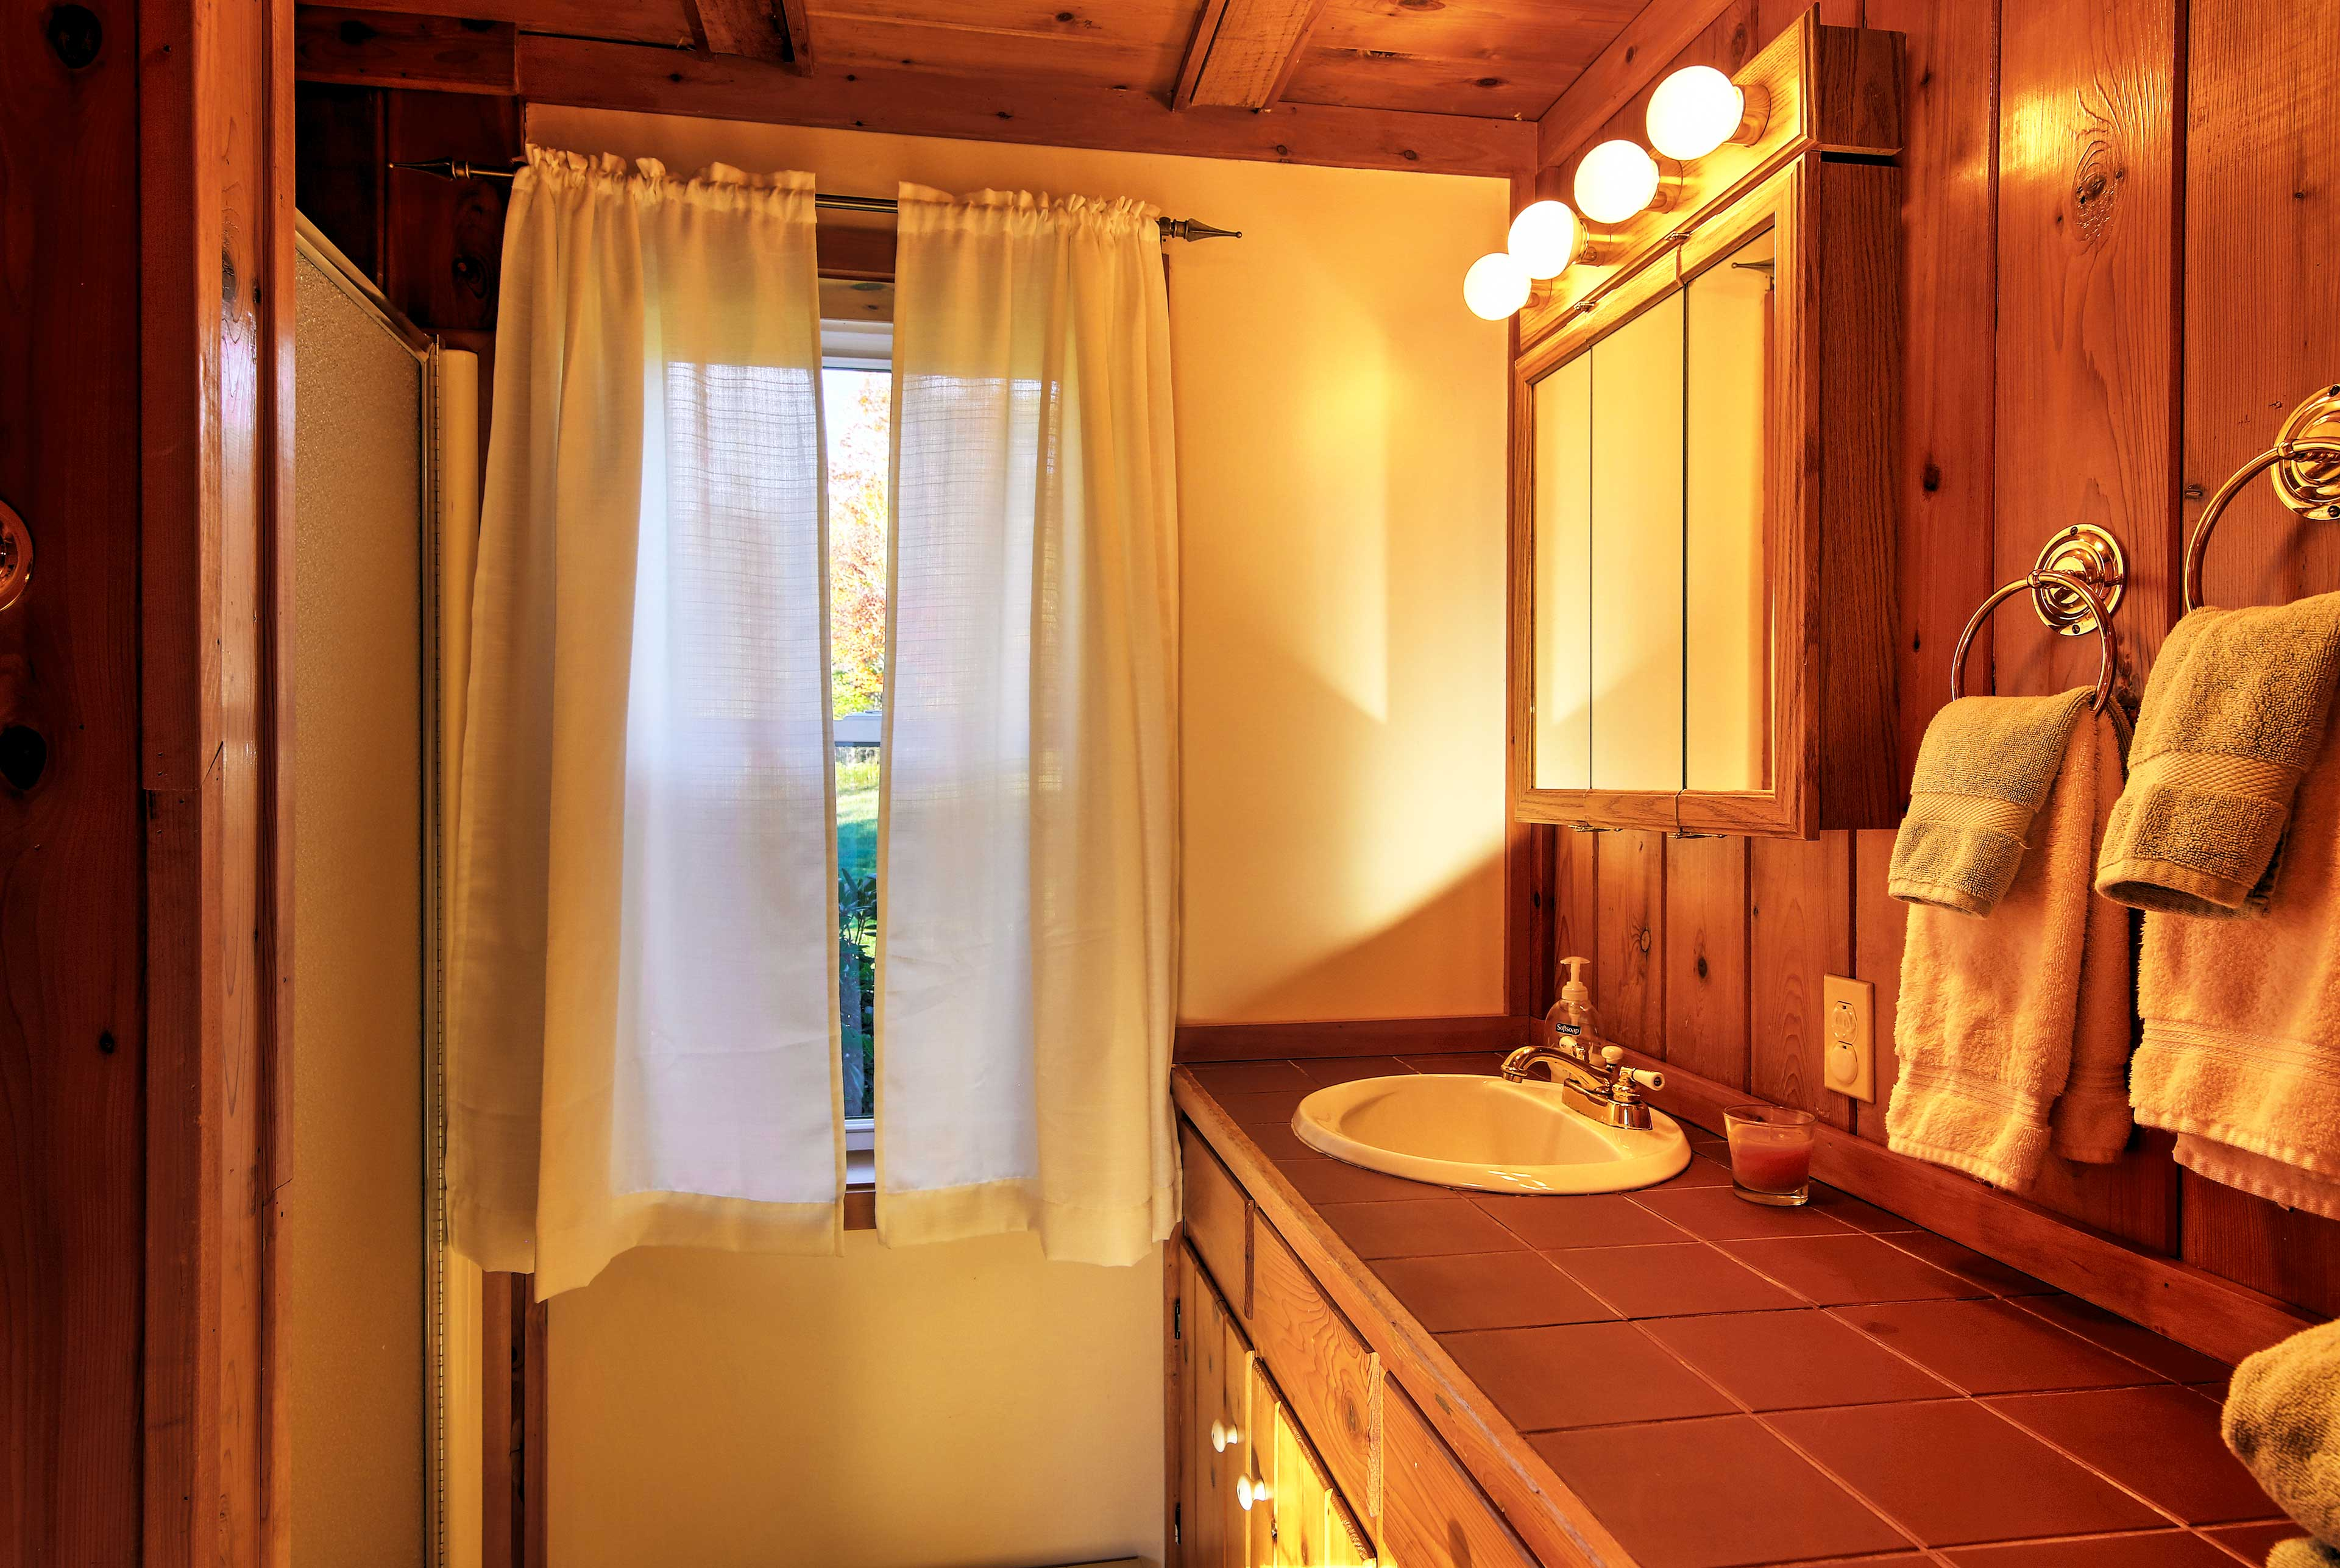 The first bathroom is equipped with a walk-in shower and single vanity.